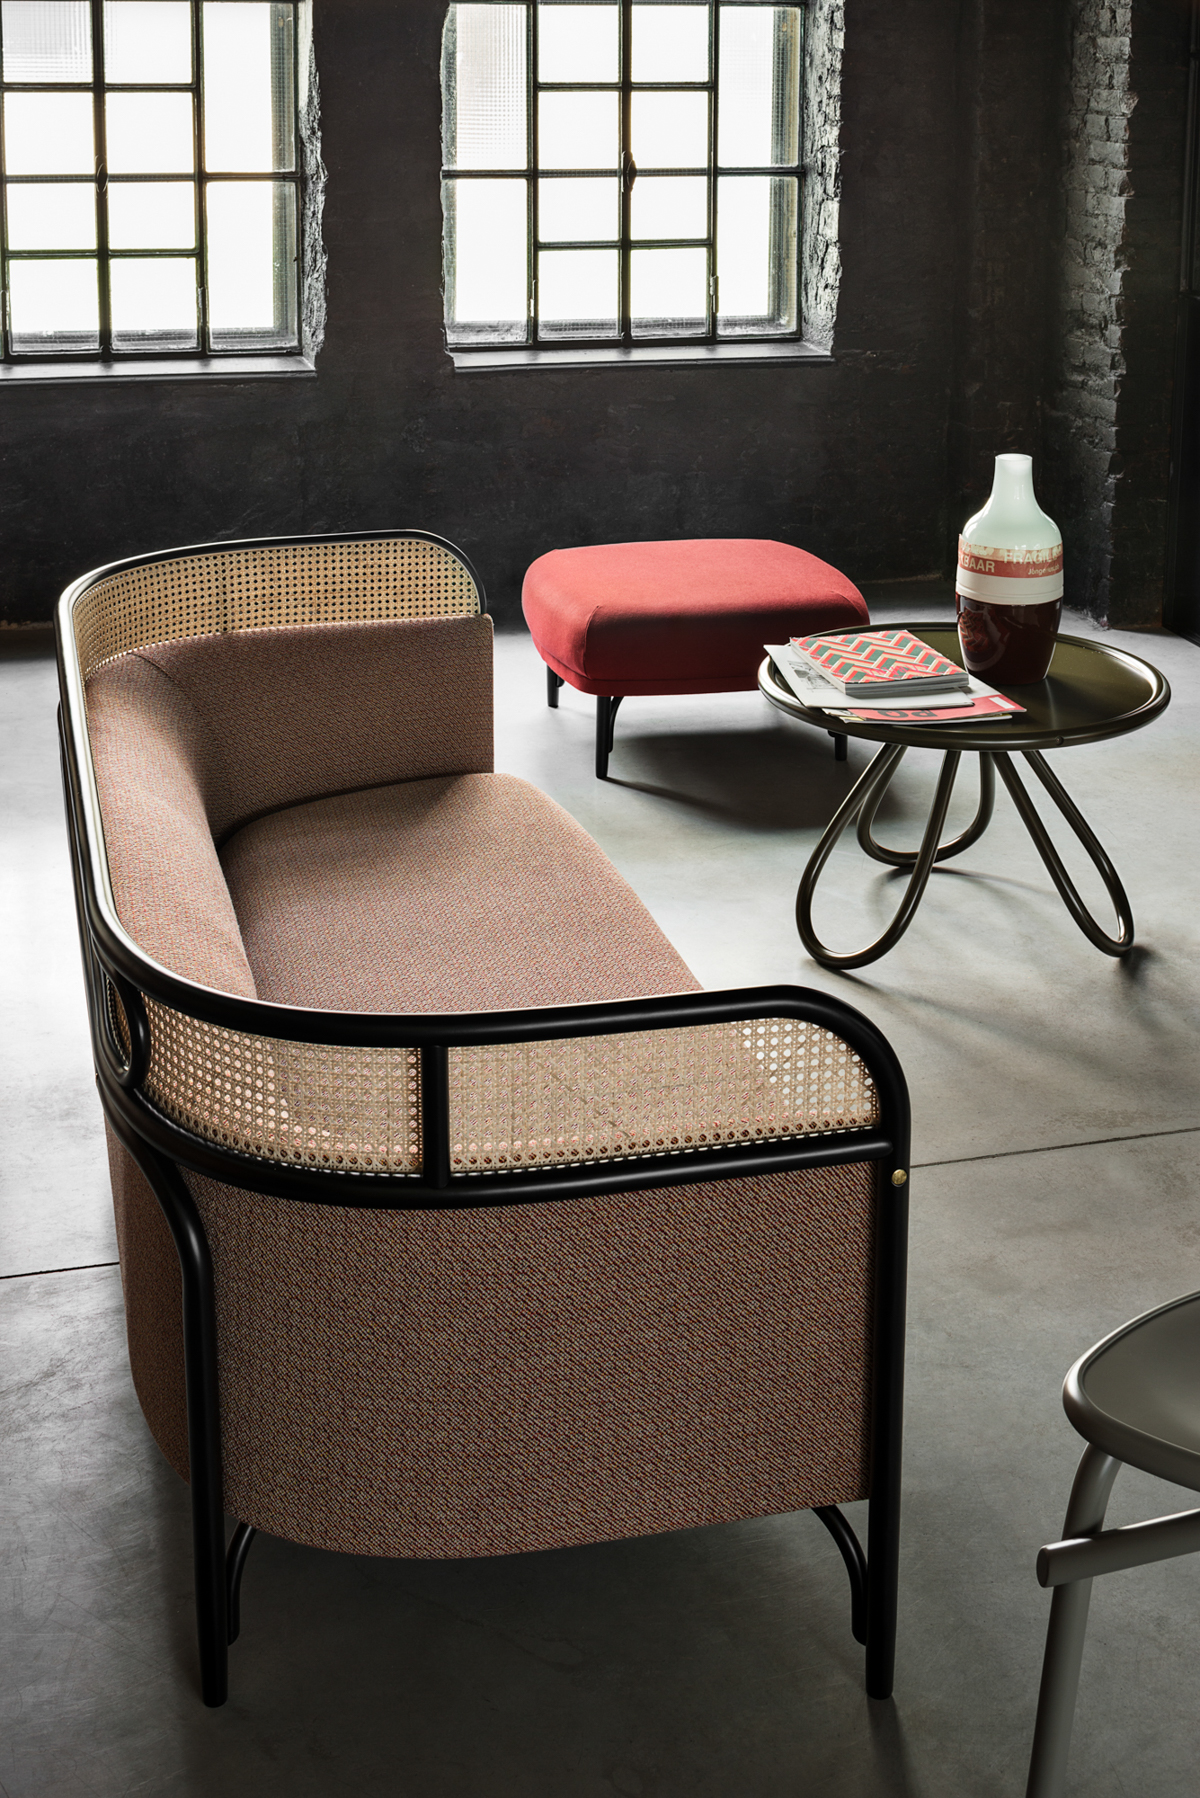 gtv_targa_sofa200_design-gamfratesi_3